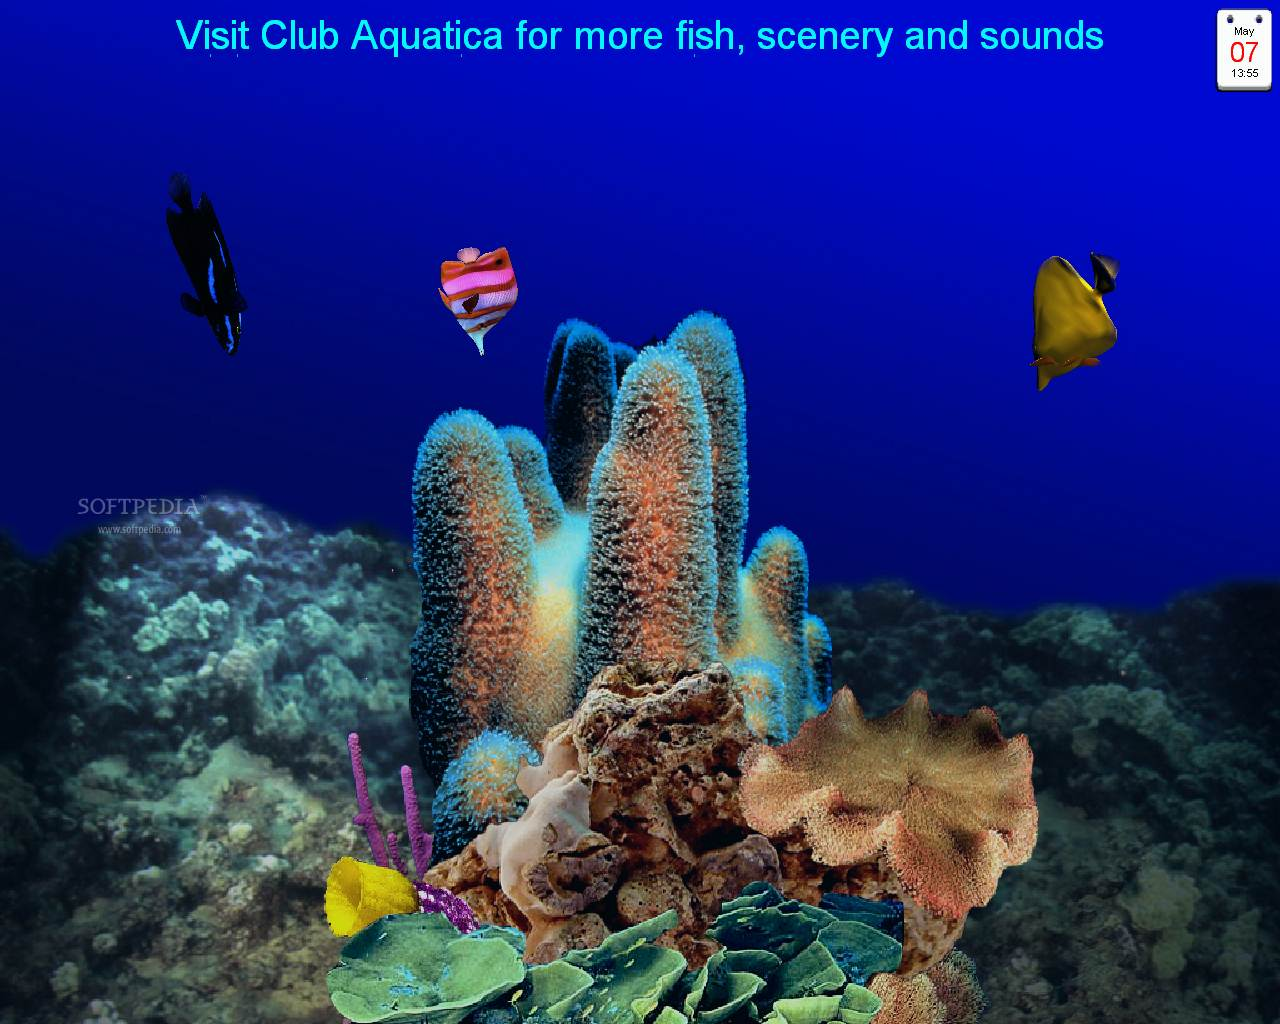 Download 3d free screen saver software: aquatica 3d fish screen.